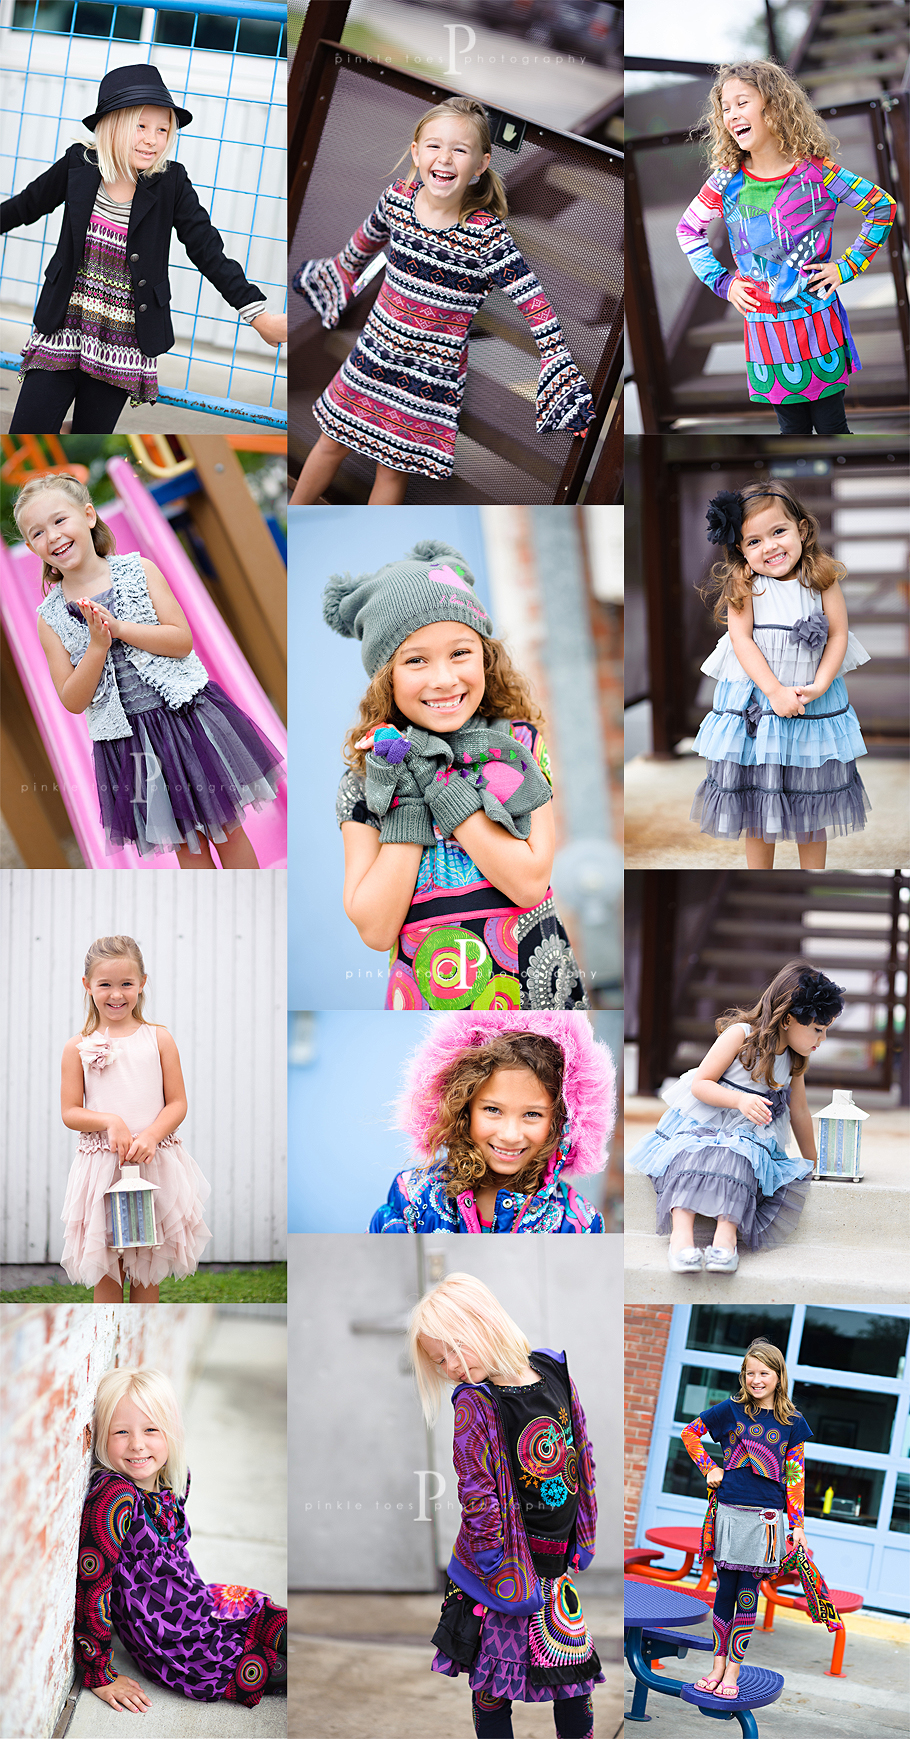 gro-austin-commercial-kids-photographer.jpg